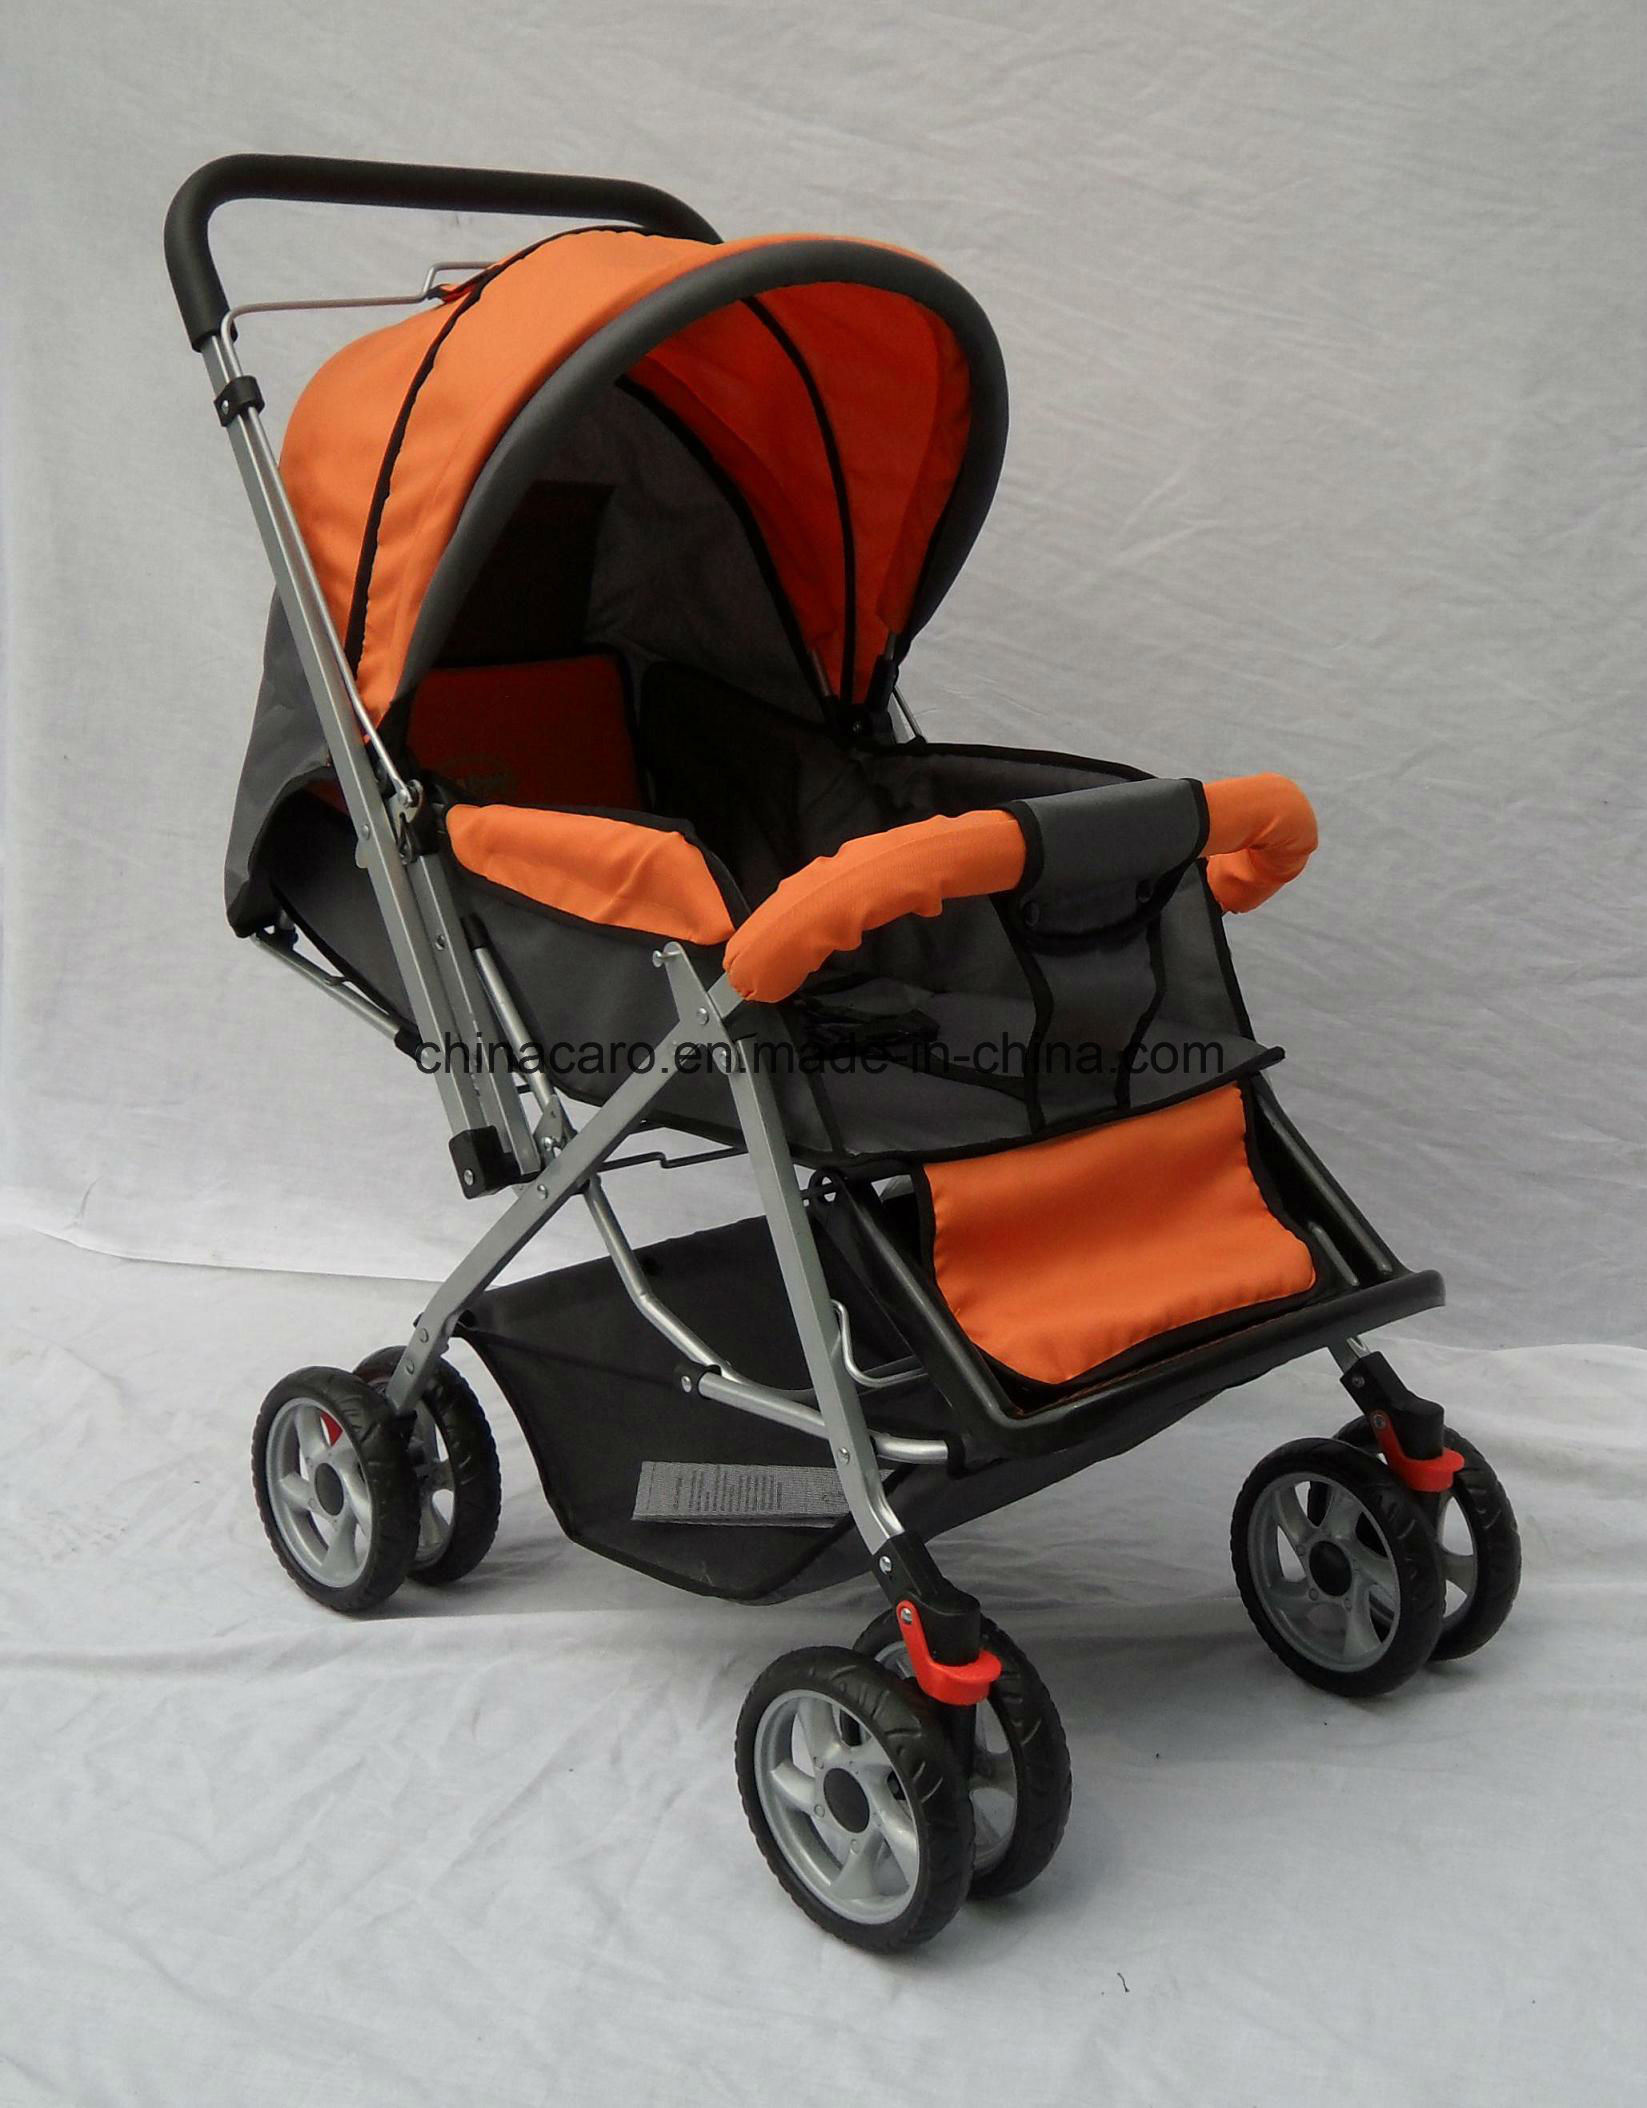 High Quality Fold Baby Stroller with Ce Certificate